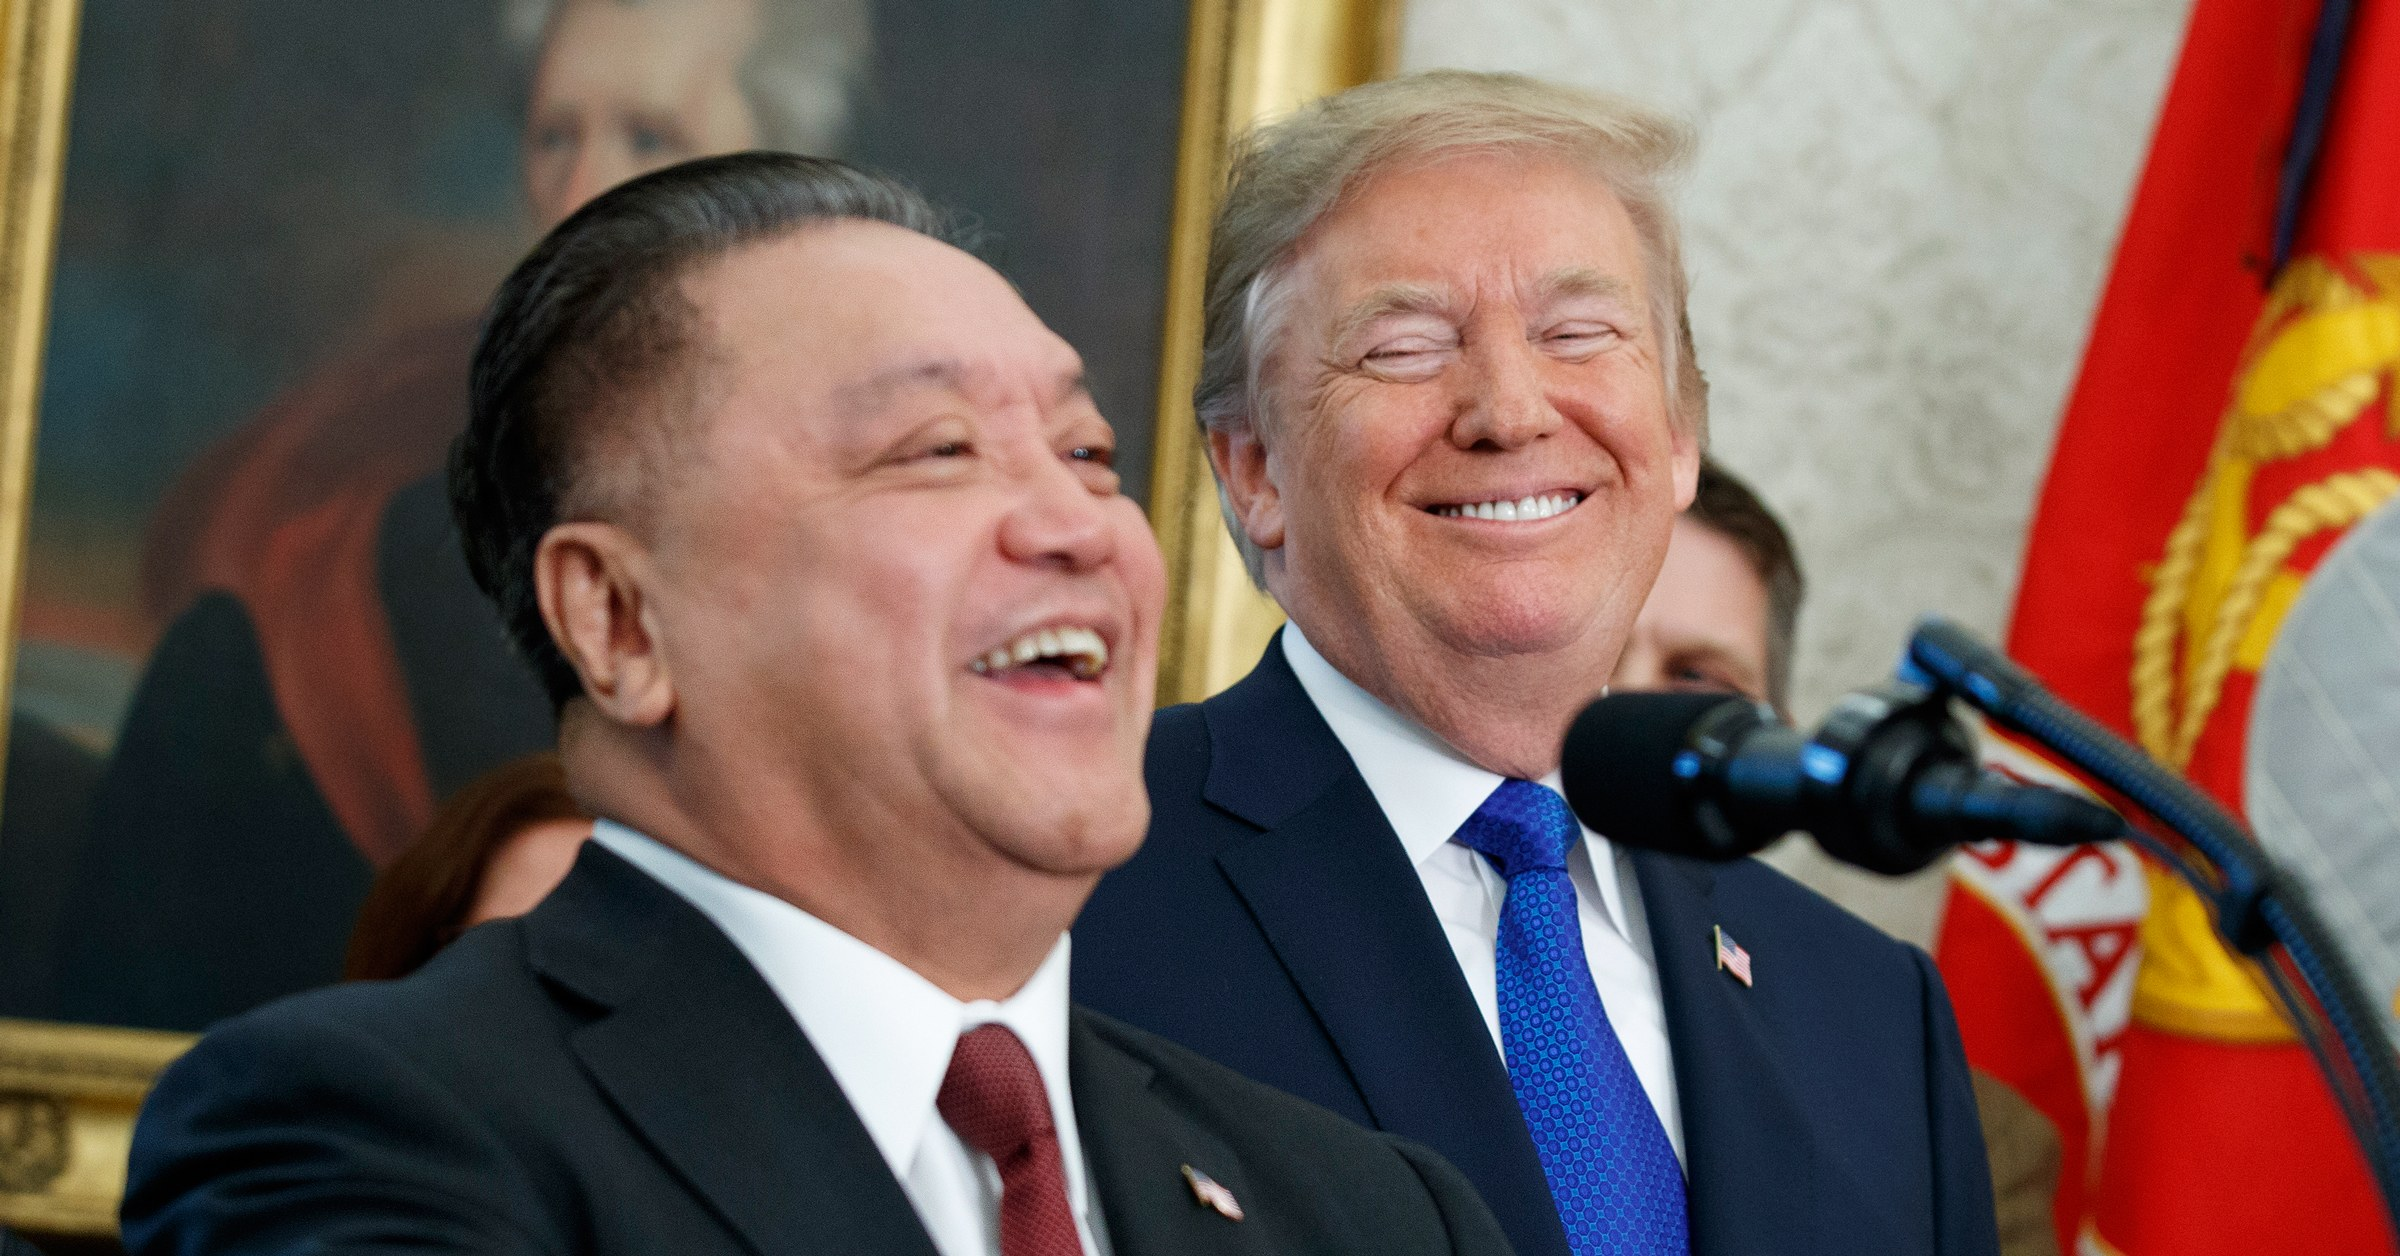 Tan Hock Eng in the Oval Office together with US President Donald Trump.